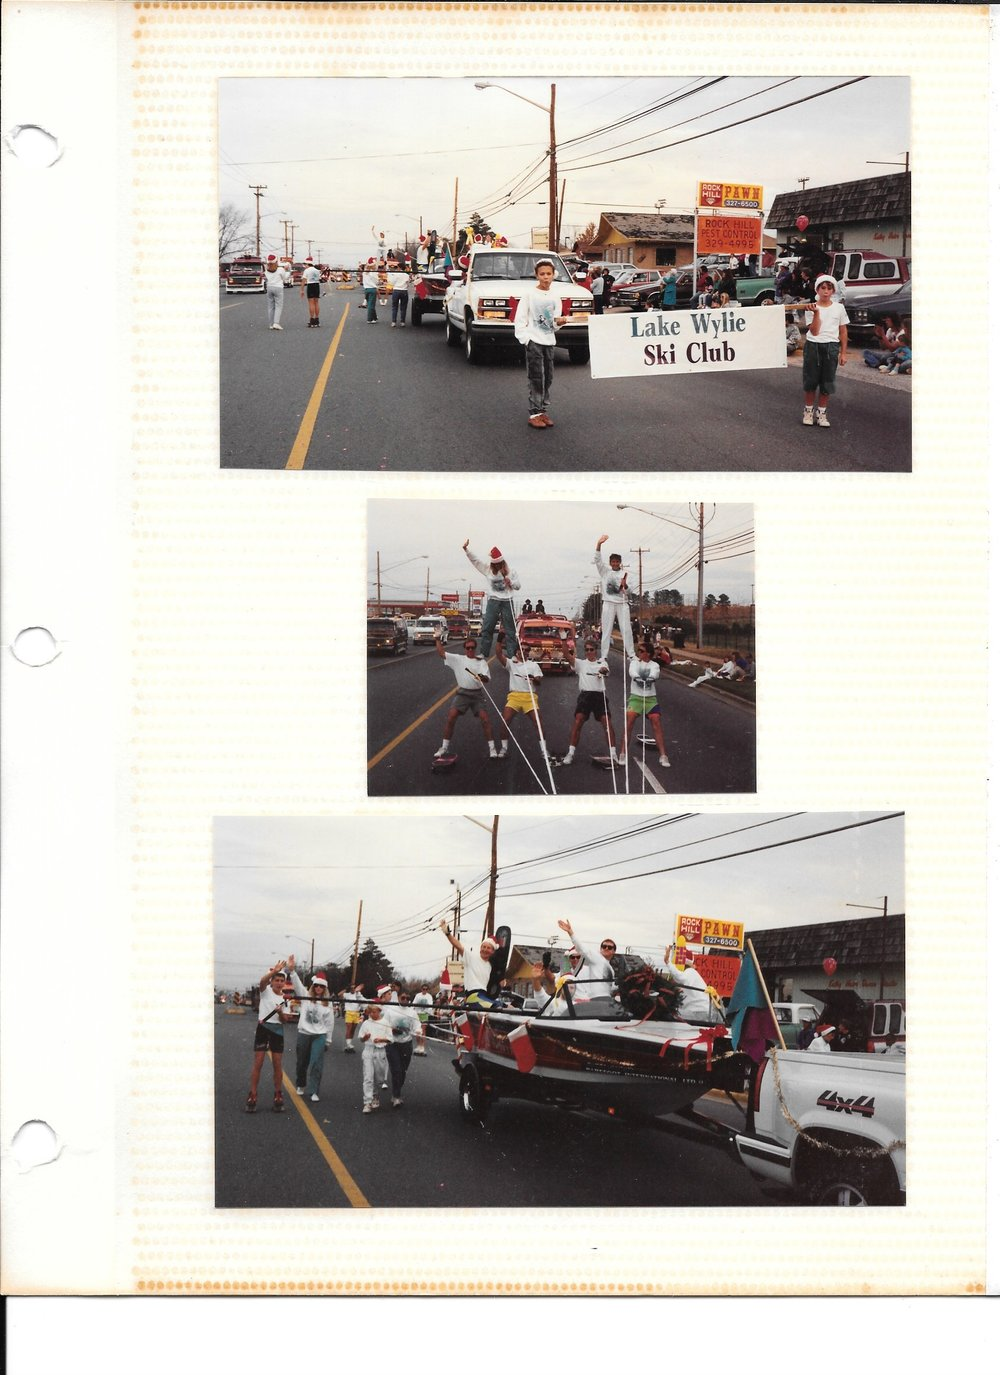 Rock Hill Christmas Parade.jpg